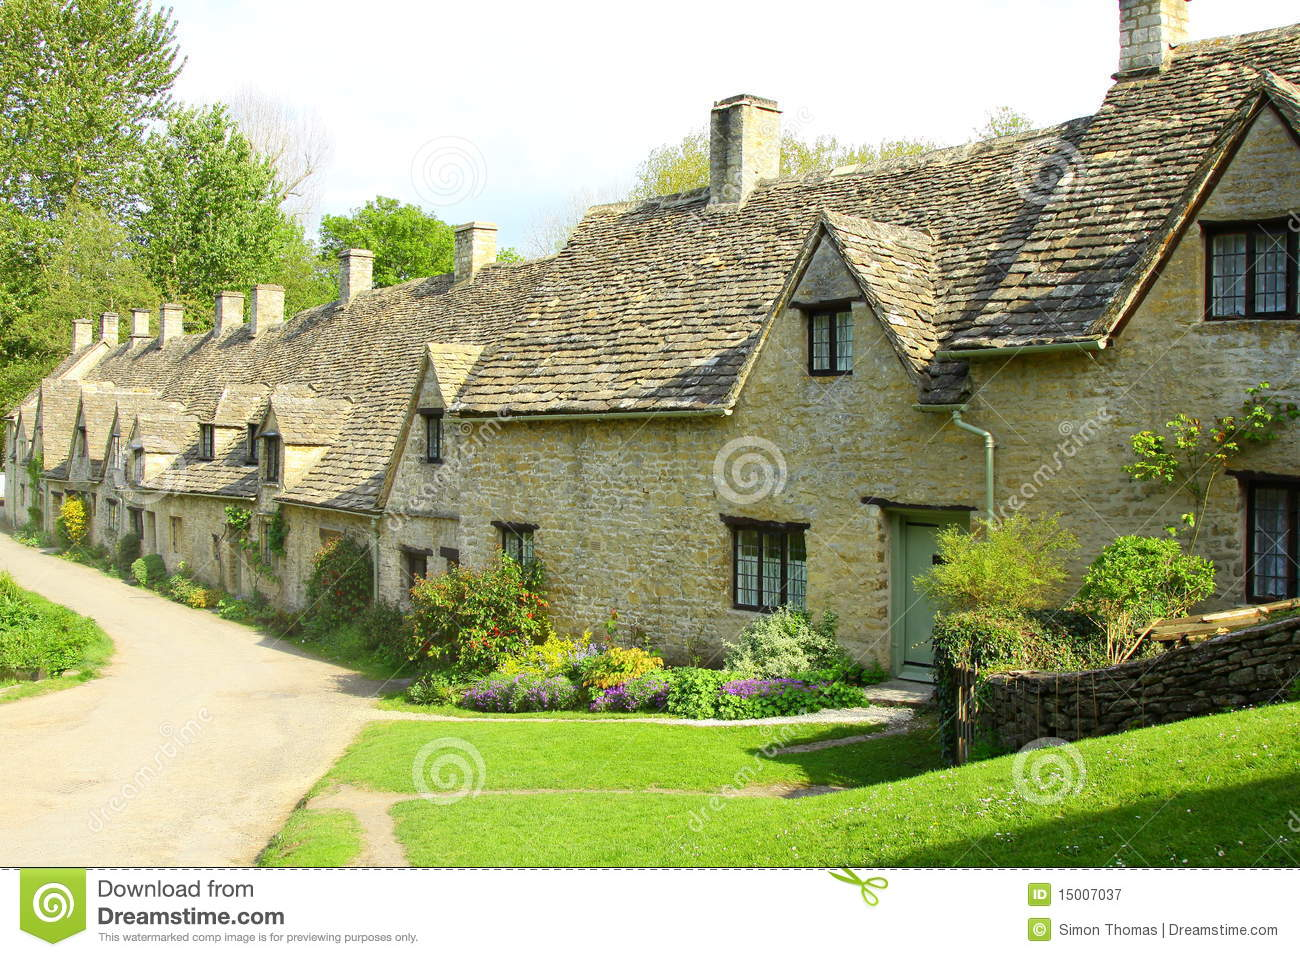 maisons de ligne d 39 arlington bibury cotswolds angleterre photographie stock libre de droits. Black Bedroom Furniture Sets. Home Design Ideas